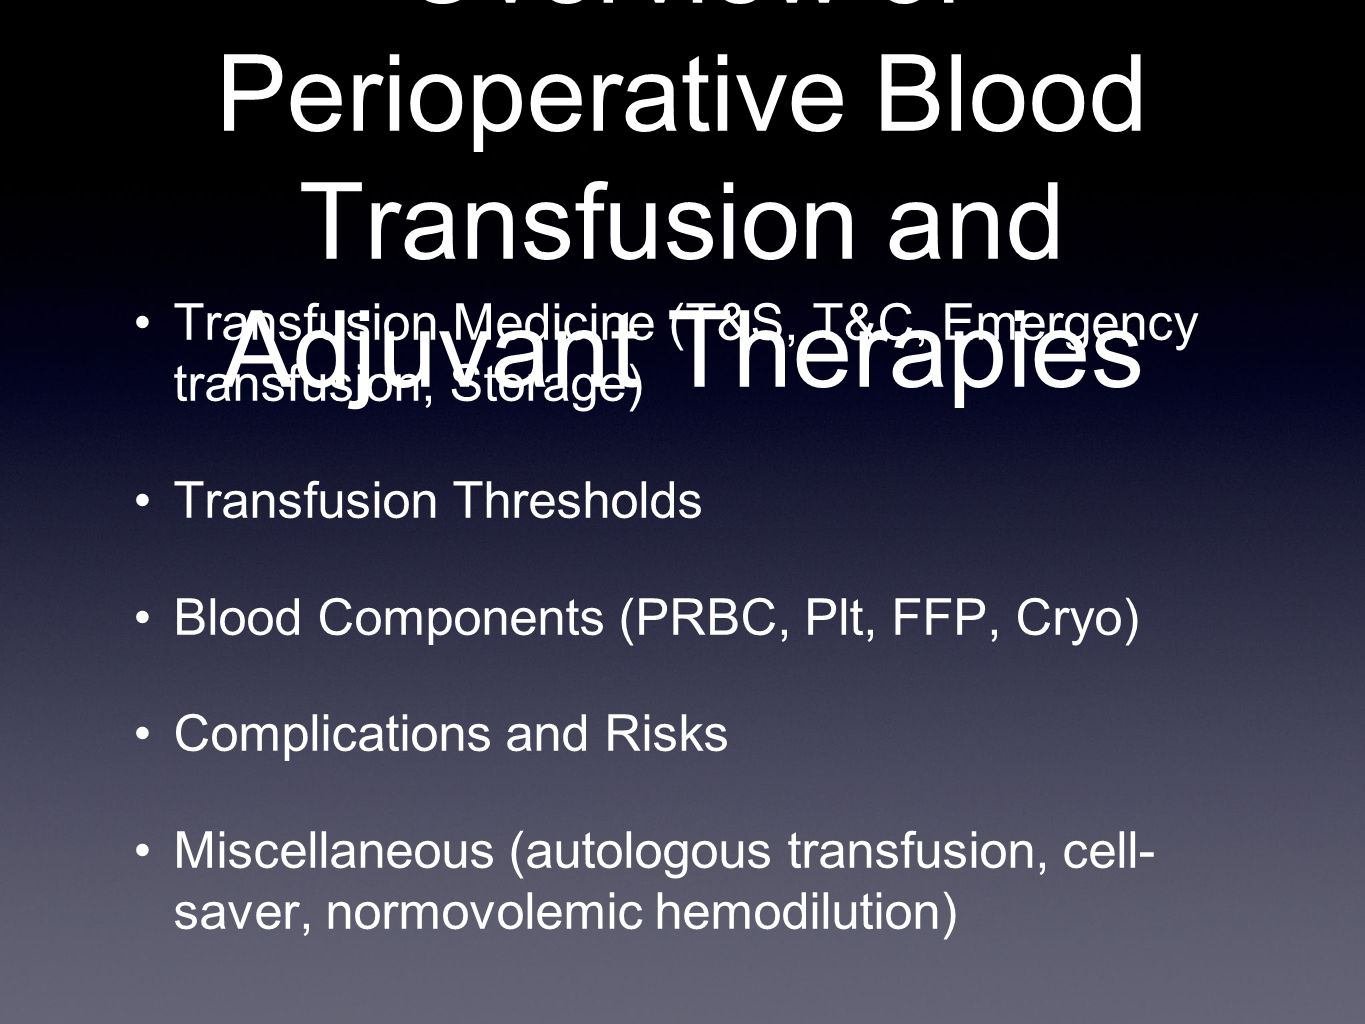 Overview of Perioperative Blood Transfusion and Adjuvant Therapies Transfusion Medicine (T&S, T&C, Emergency transfusion, Storage) Transfusion Thresholds Blood Components (PRBC, Plt, FFP, Cryo) Complications and Risks Miscellaneous (autologous transfusion, cell- saver, normovolemic hemodilution)